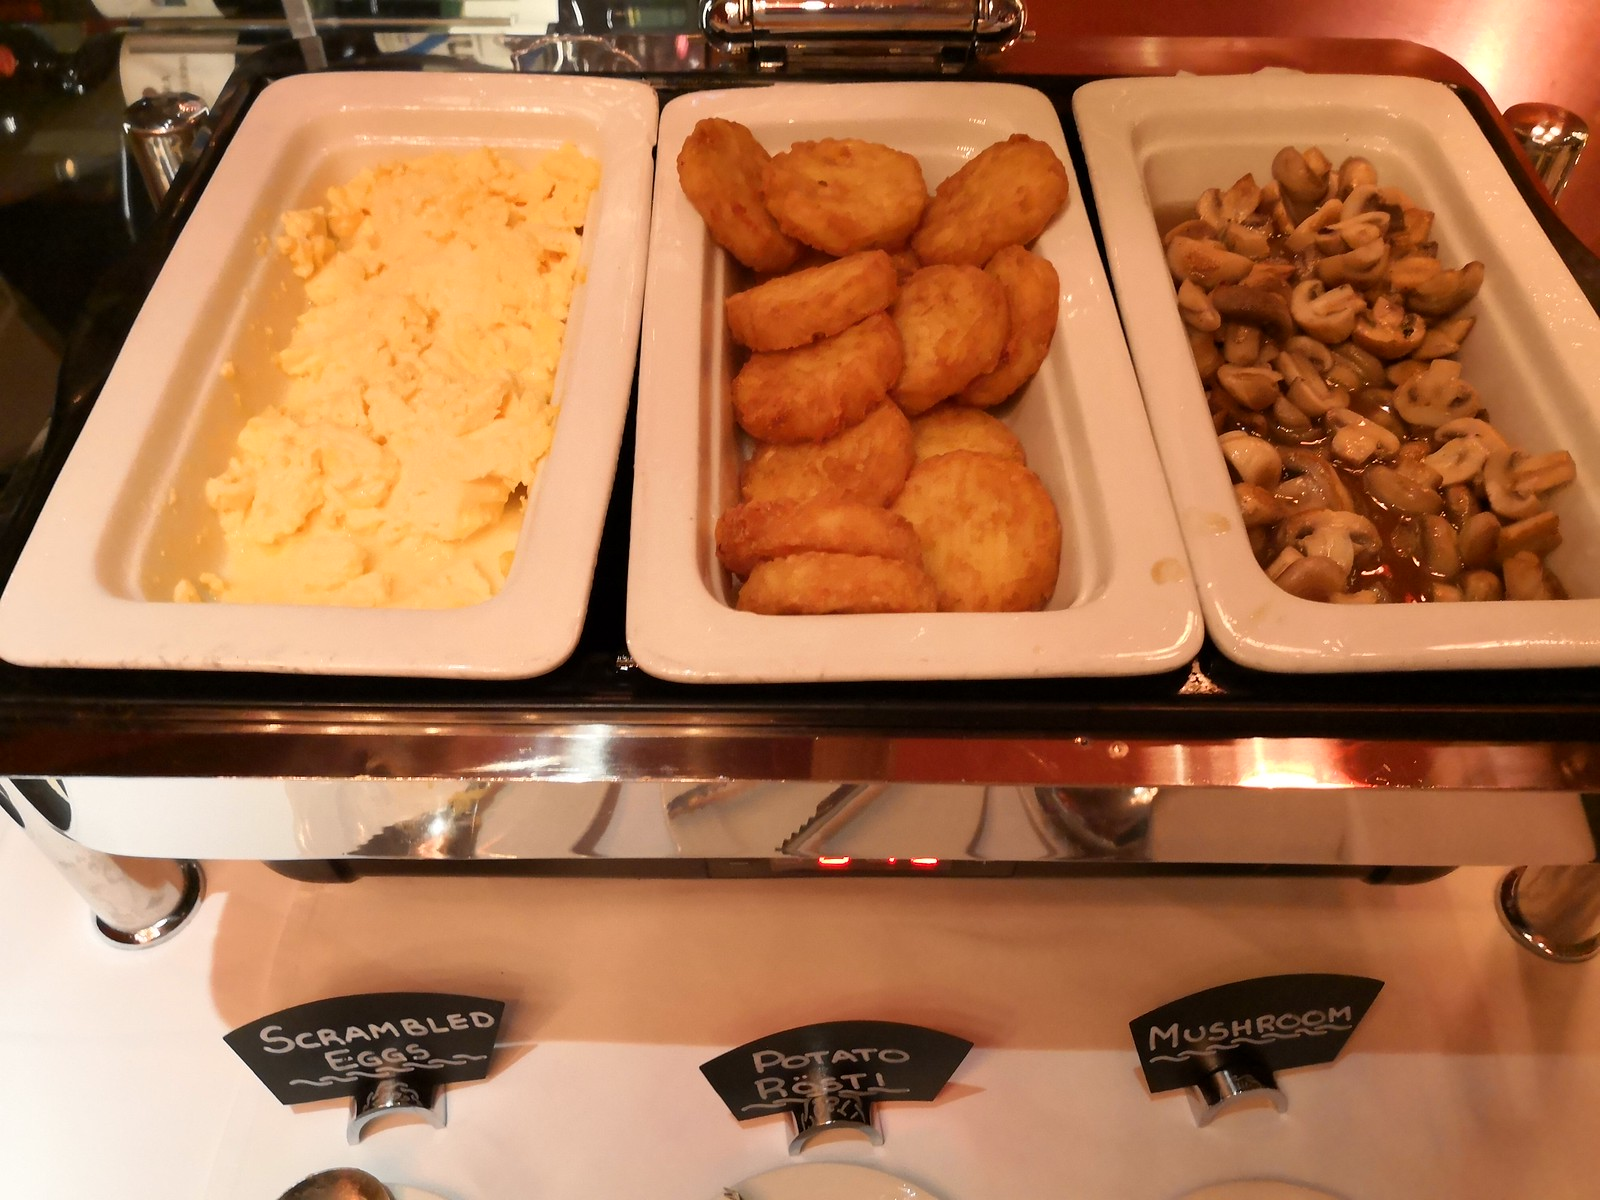 Scrambled egg, hash brown and mushrooms